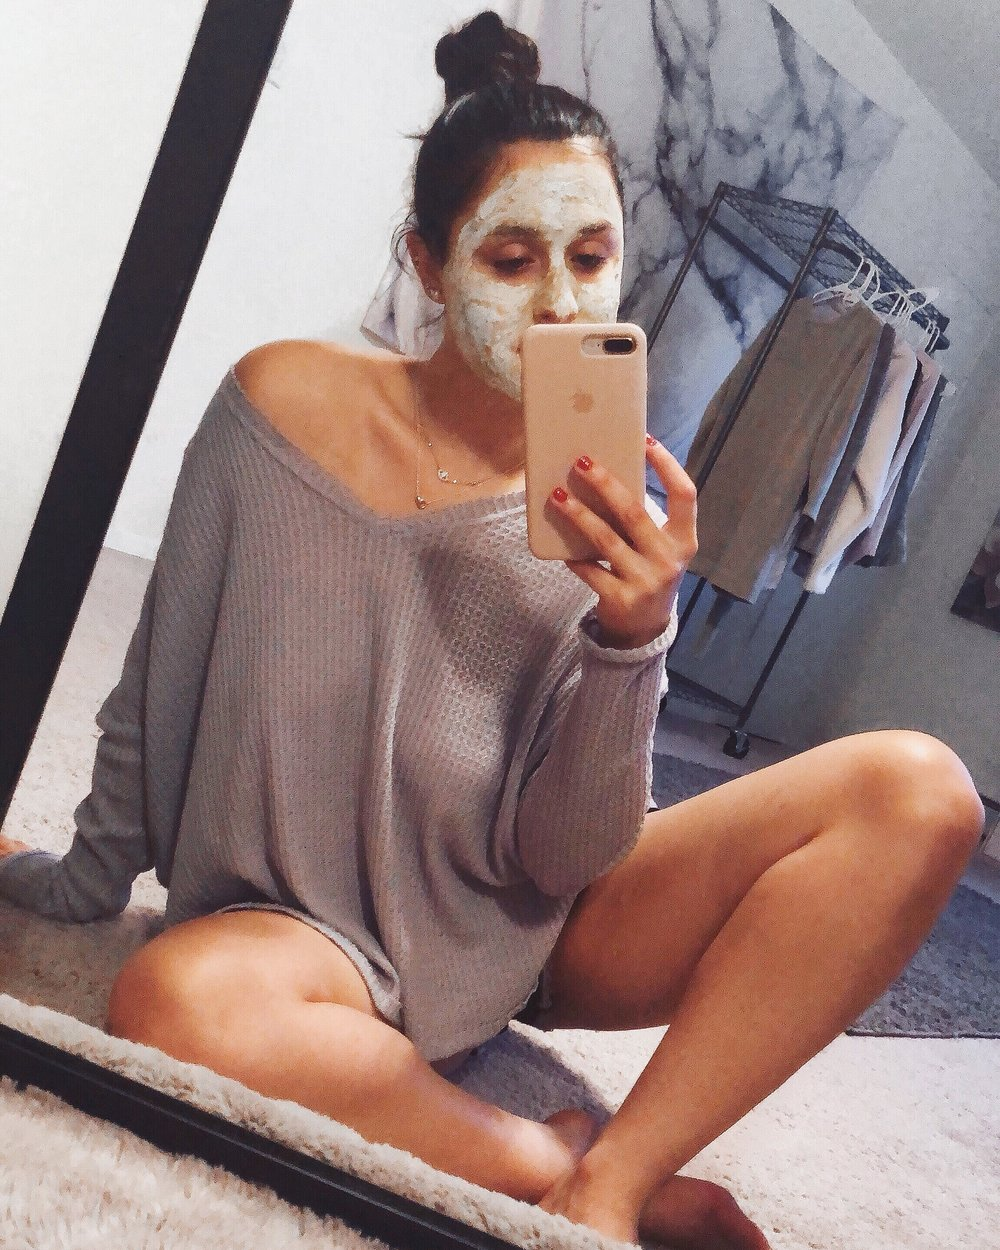 I use different masks - depending on what my skin needs that particular day, but my favorite are exfoliating masks!